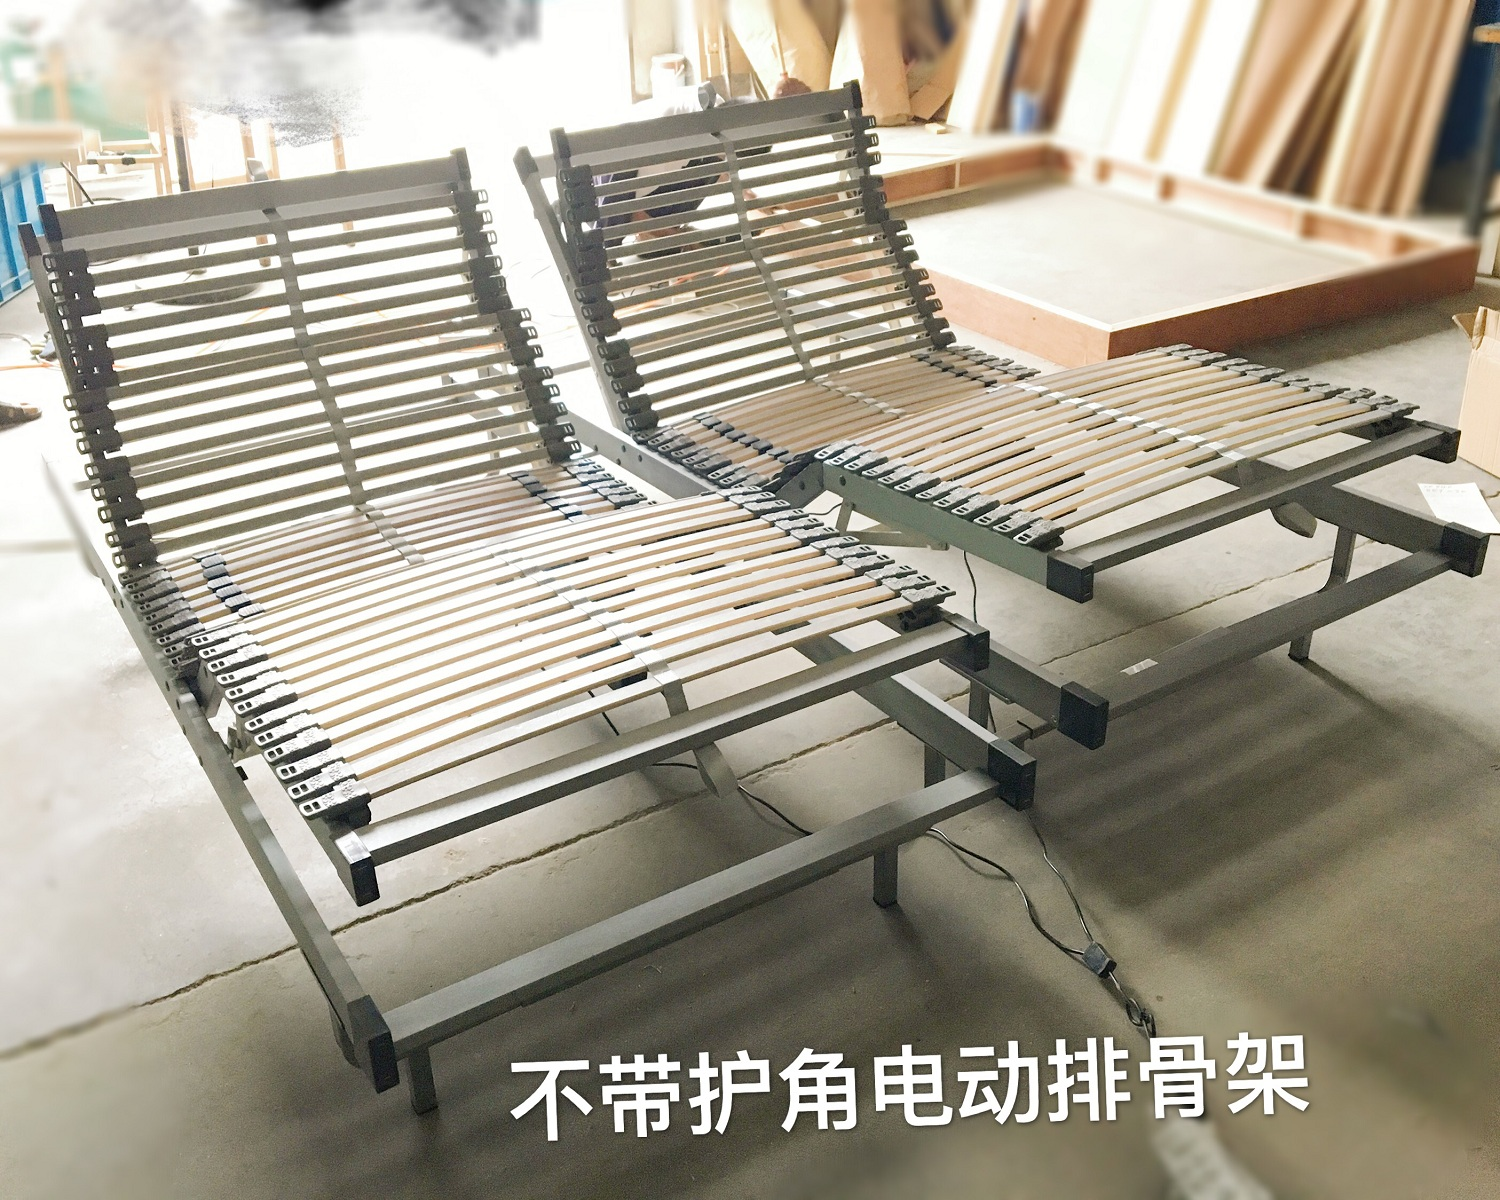 The valley Beth three color birch wood varnish cap full electric bedstead electric discharge skeleton manufacturers selling price